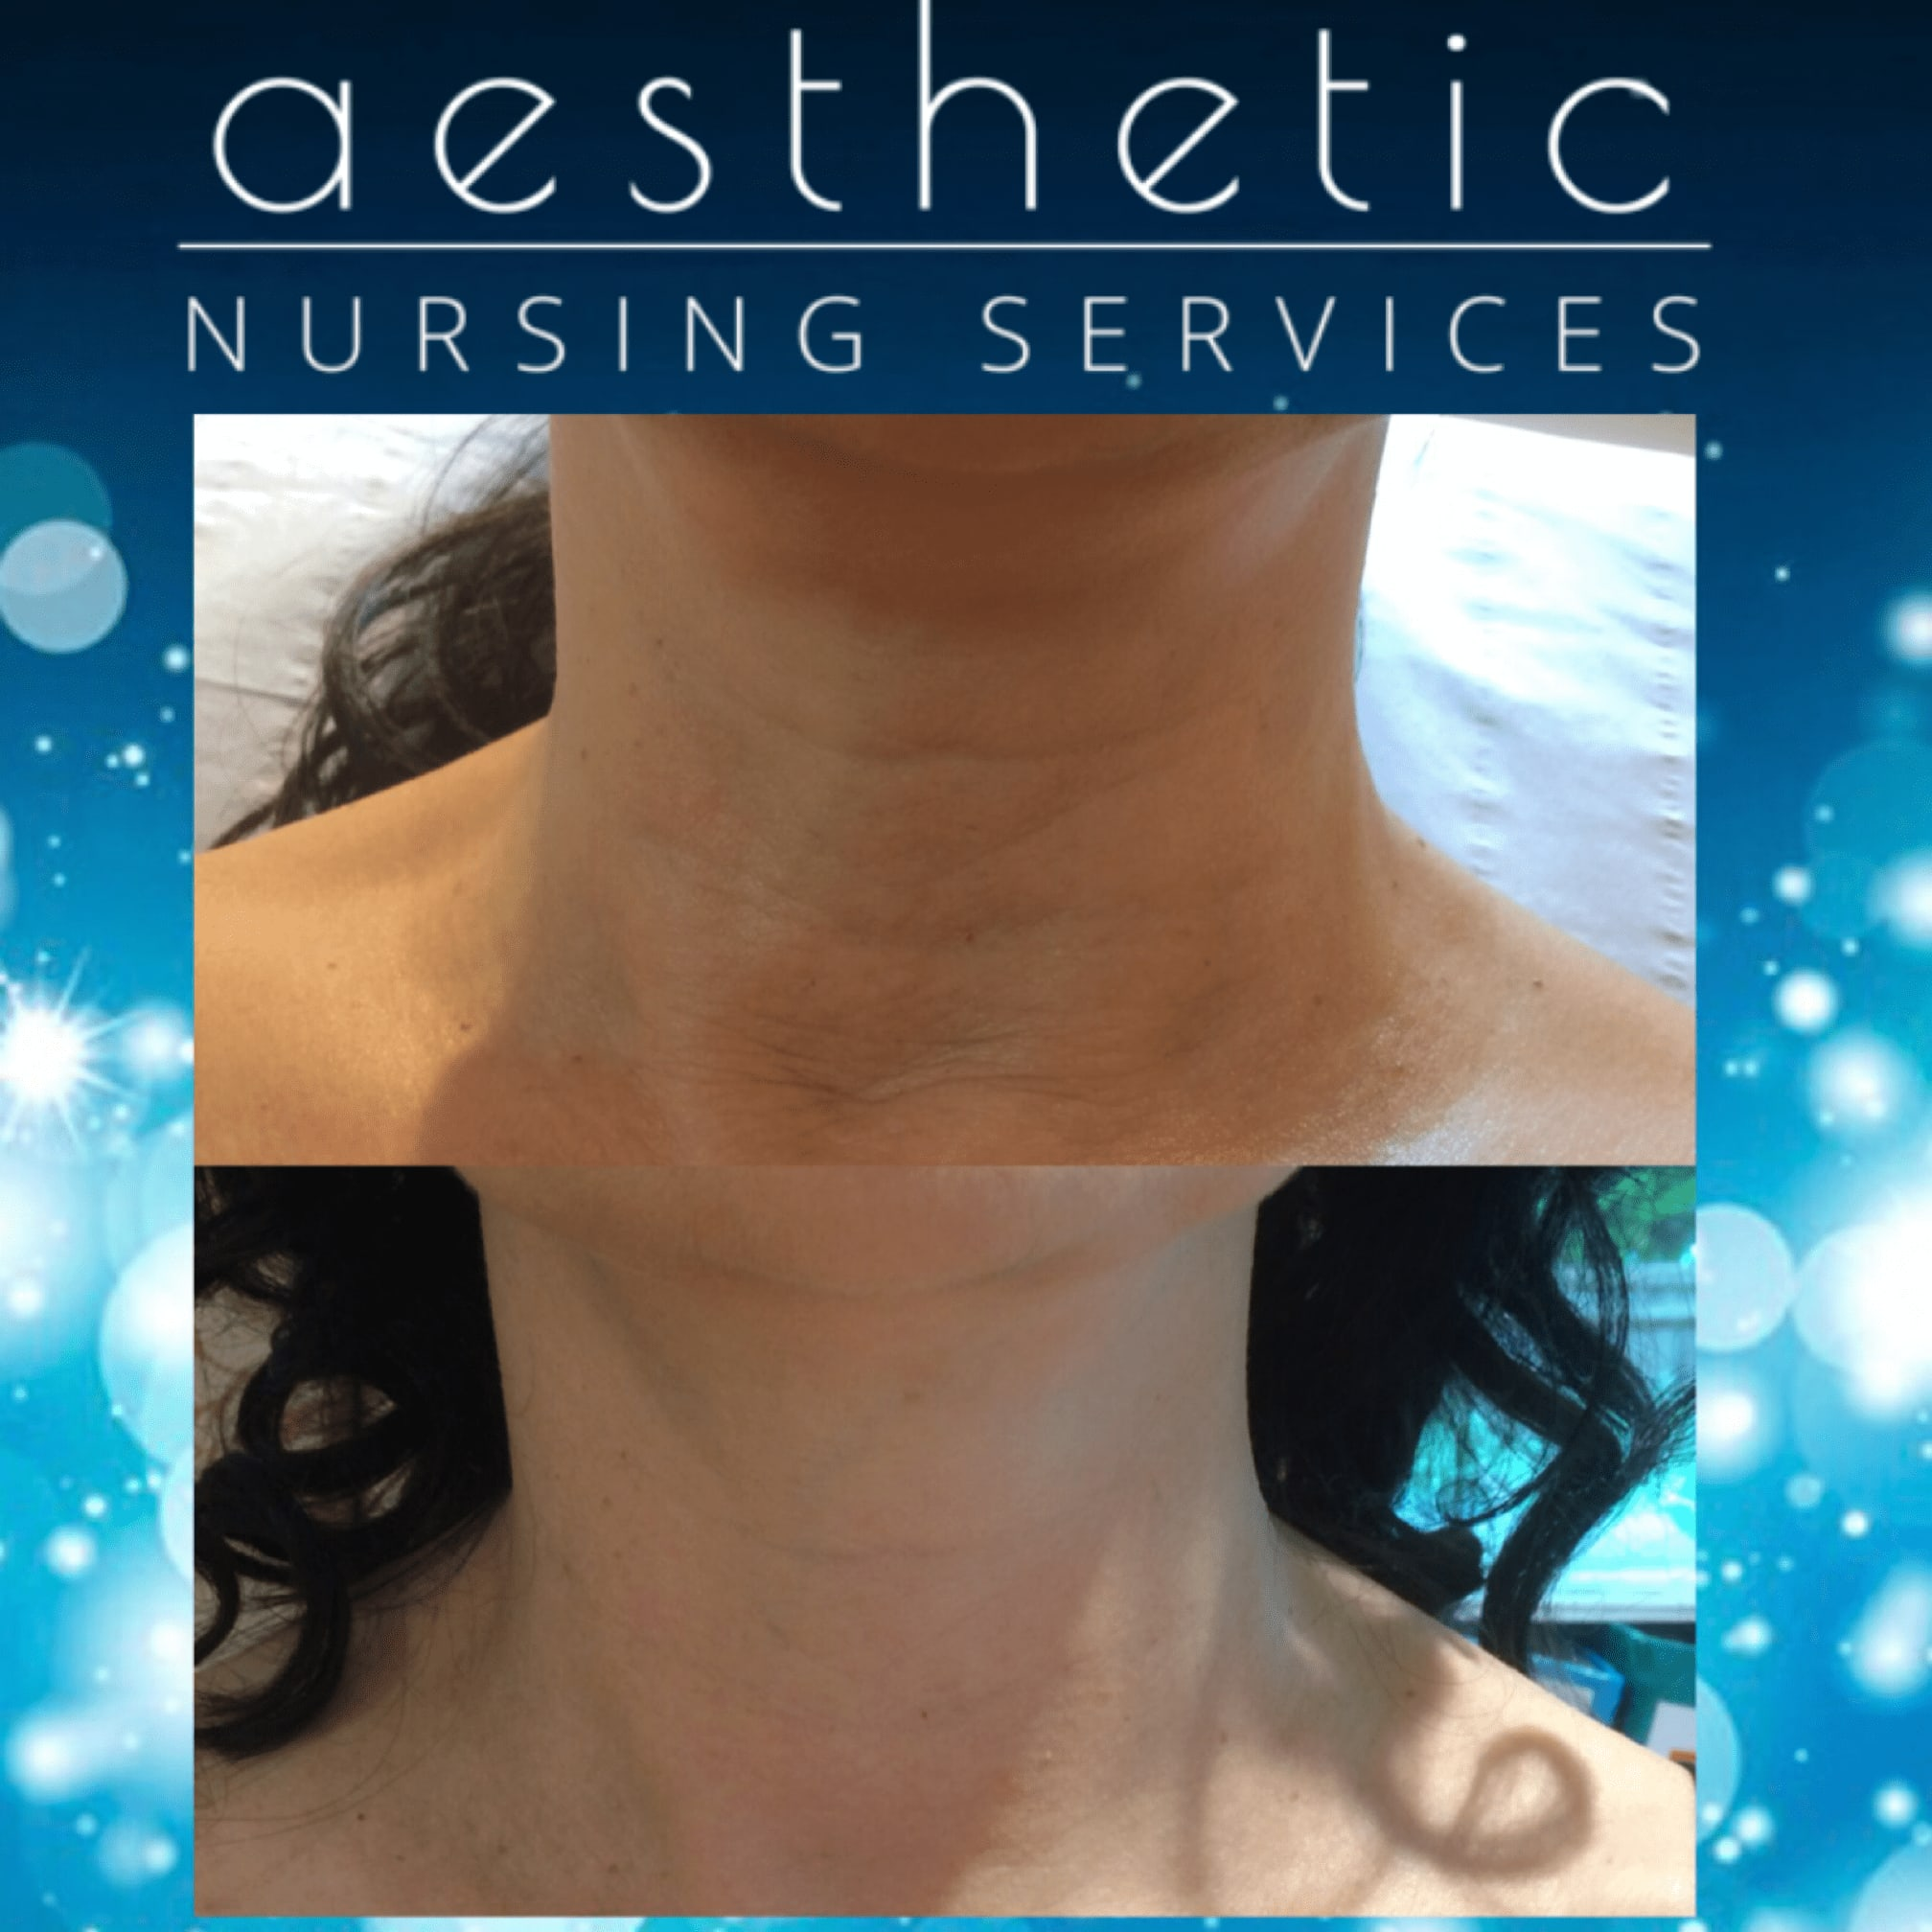 Images Aesthetic Nursing Services